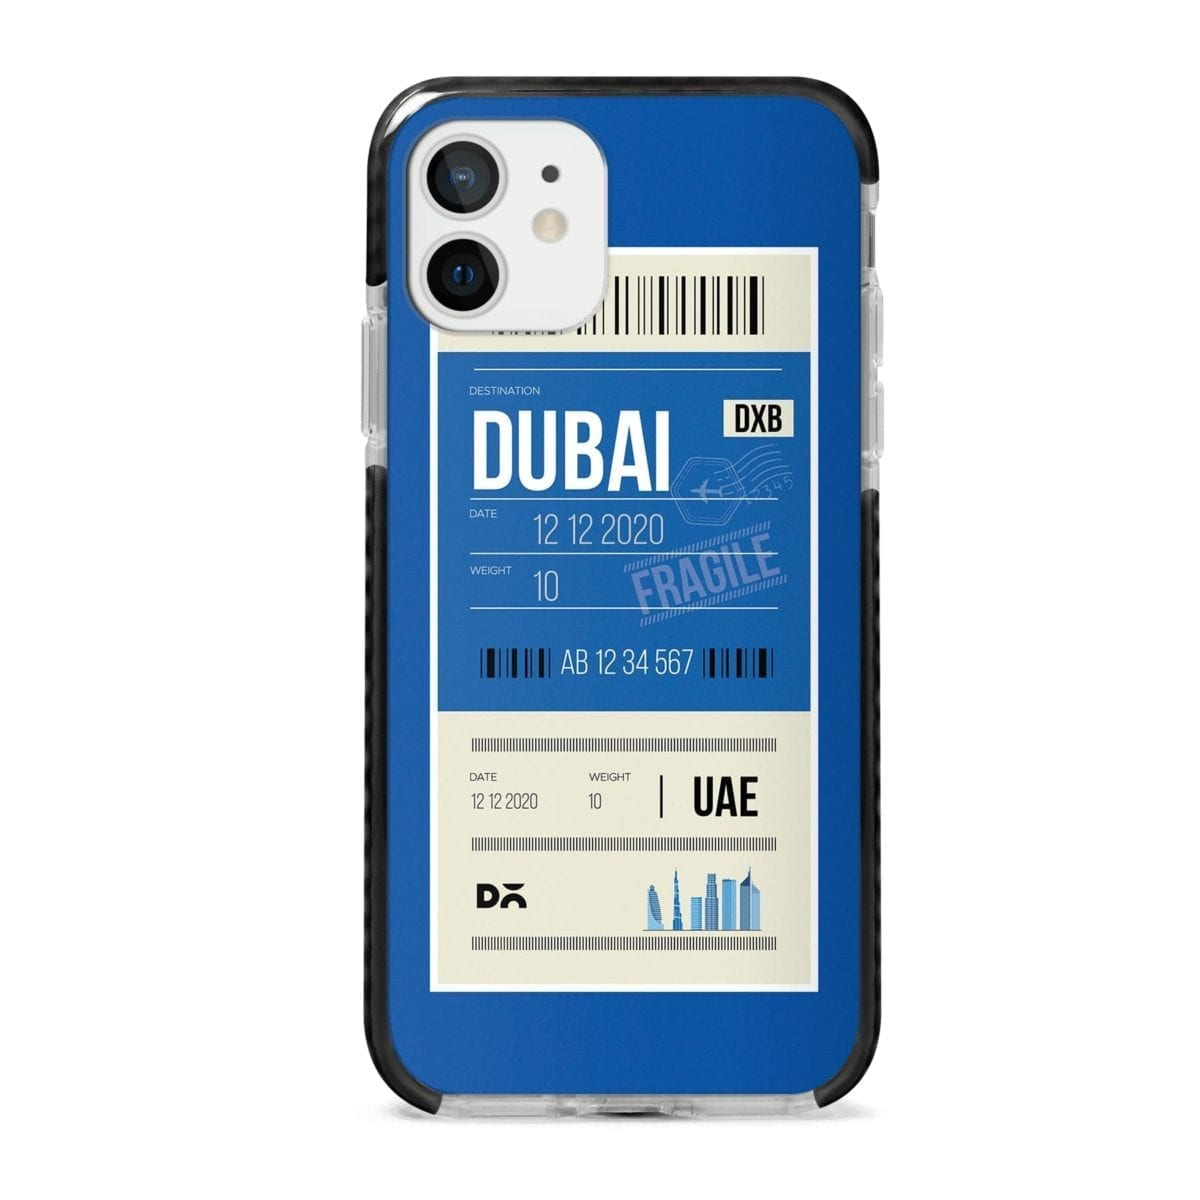 Dubai City Tag Stride Case Cover for Apple iPhone 12 Mini and Apple iPhone 12 with great design and shock proof | Klippik | Online Shopping | Kuwait UAE Saudi